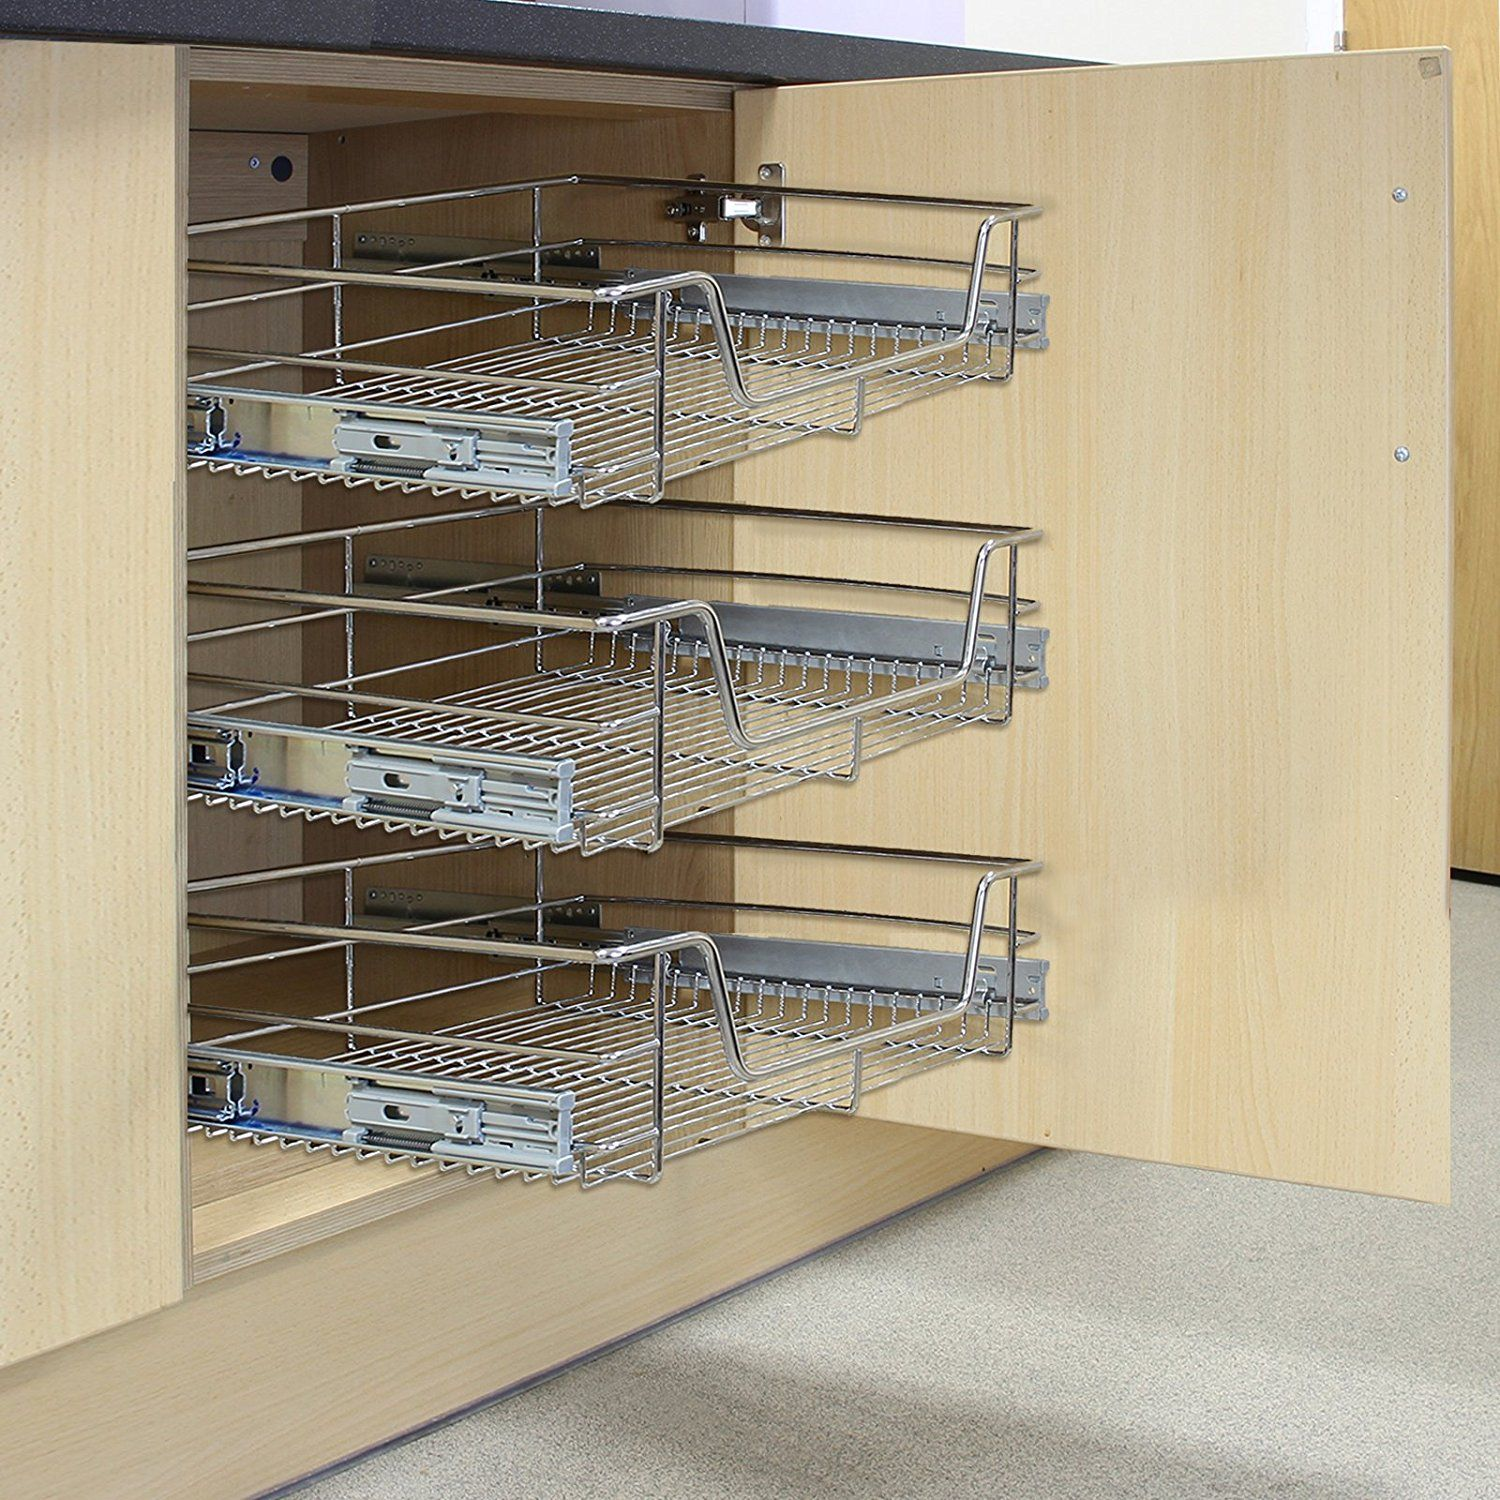 Kukoo 5 X Kitchen Pull Out Soft Close Baskets 500mm Wide Cabinet Slide Out Wire Storage Drawers Amazon Co Uk Kit Storage Drawers Wire Storage Kitchen Pulls